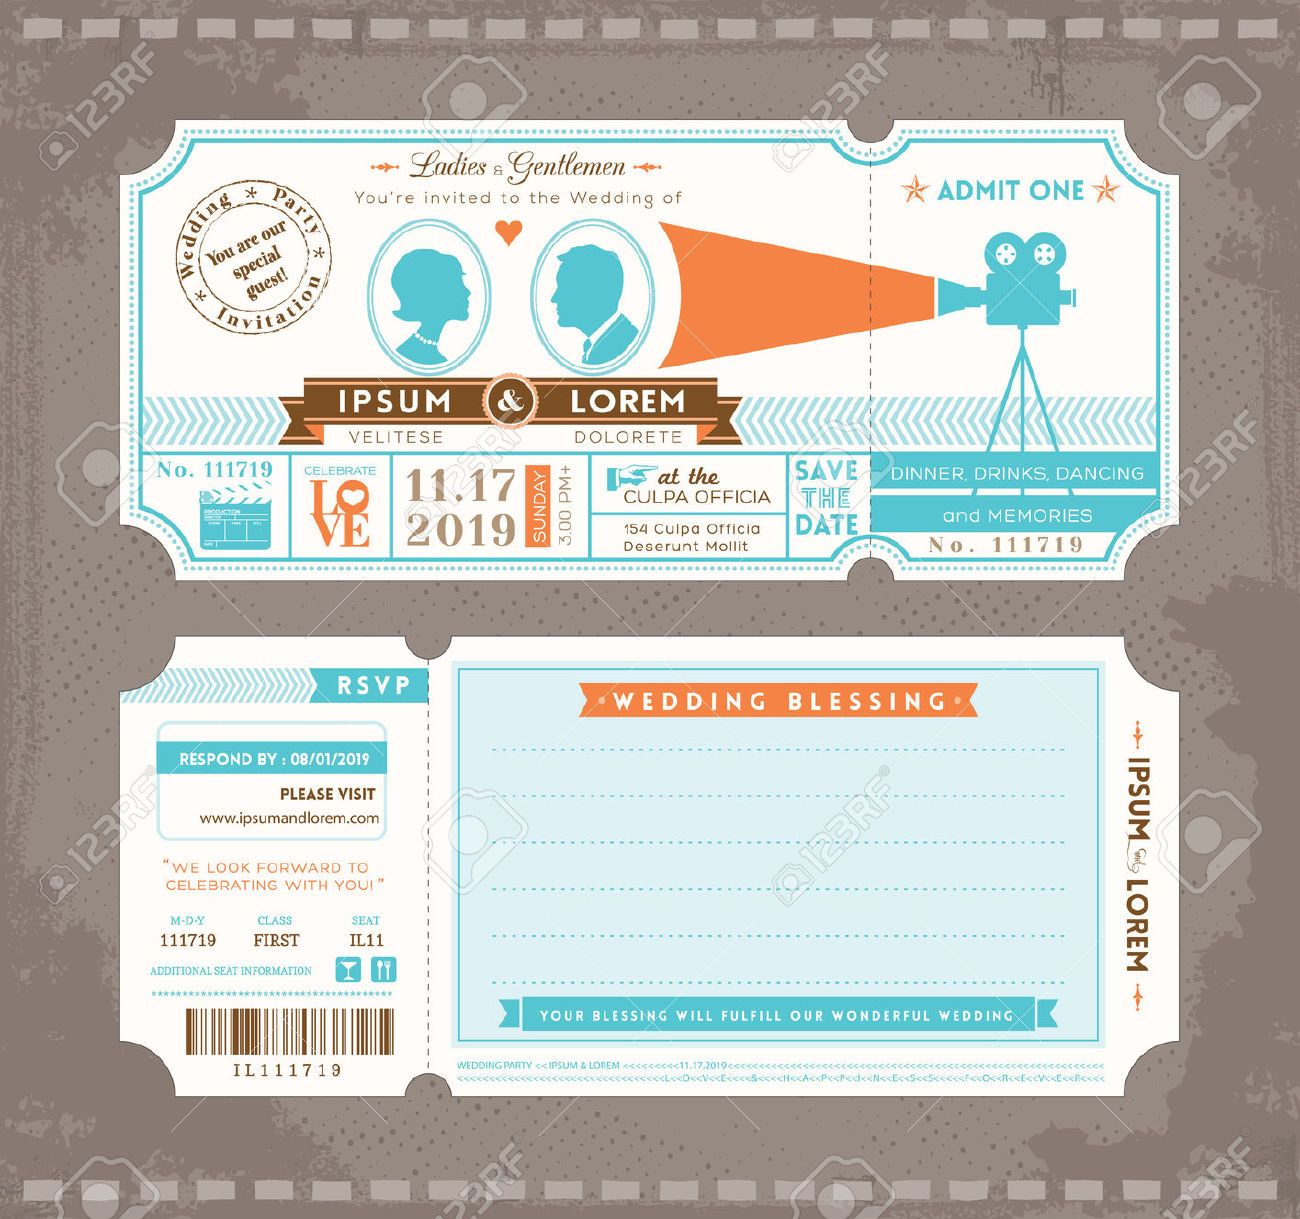 movie ticket wedding invitation template free - Google Search ...